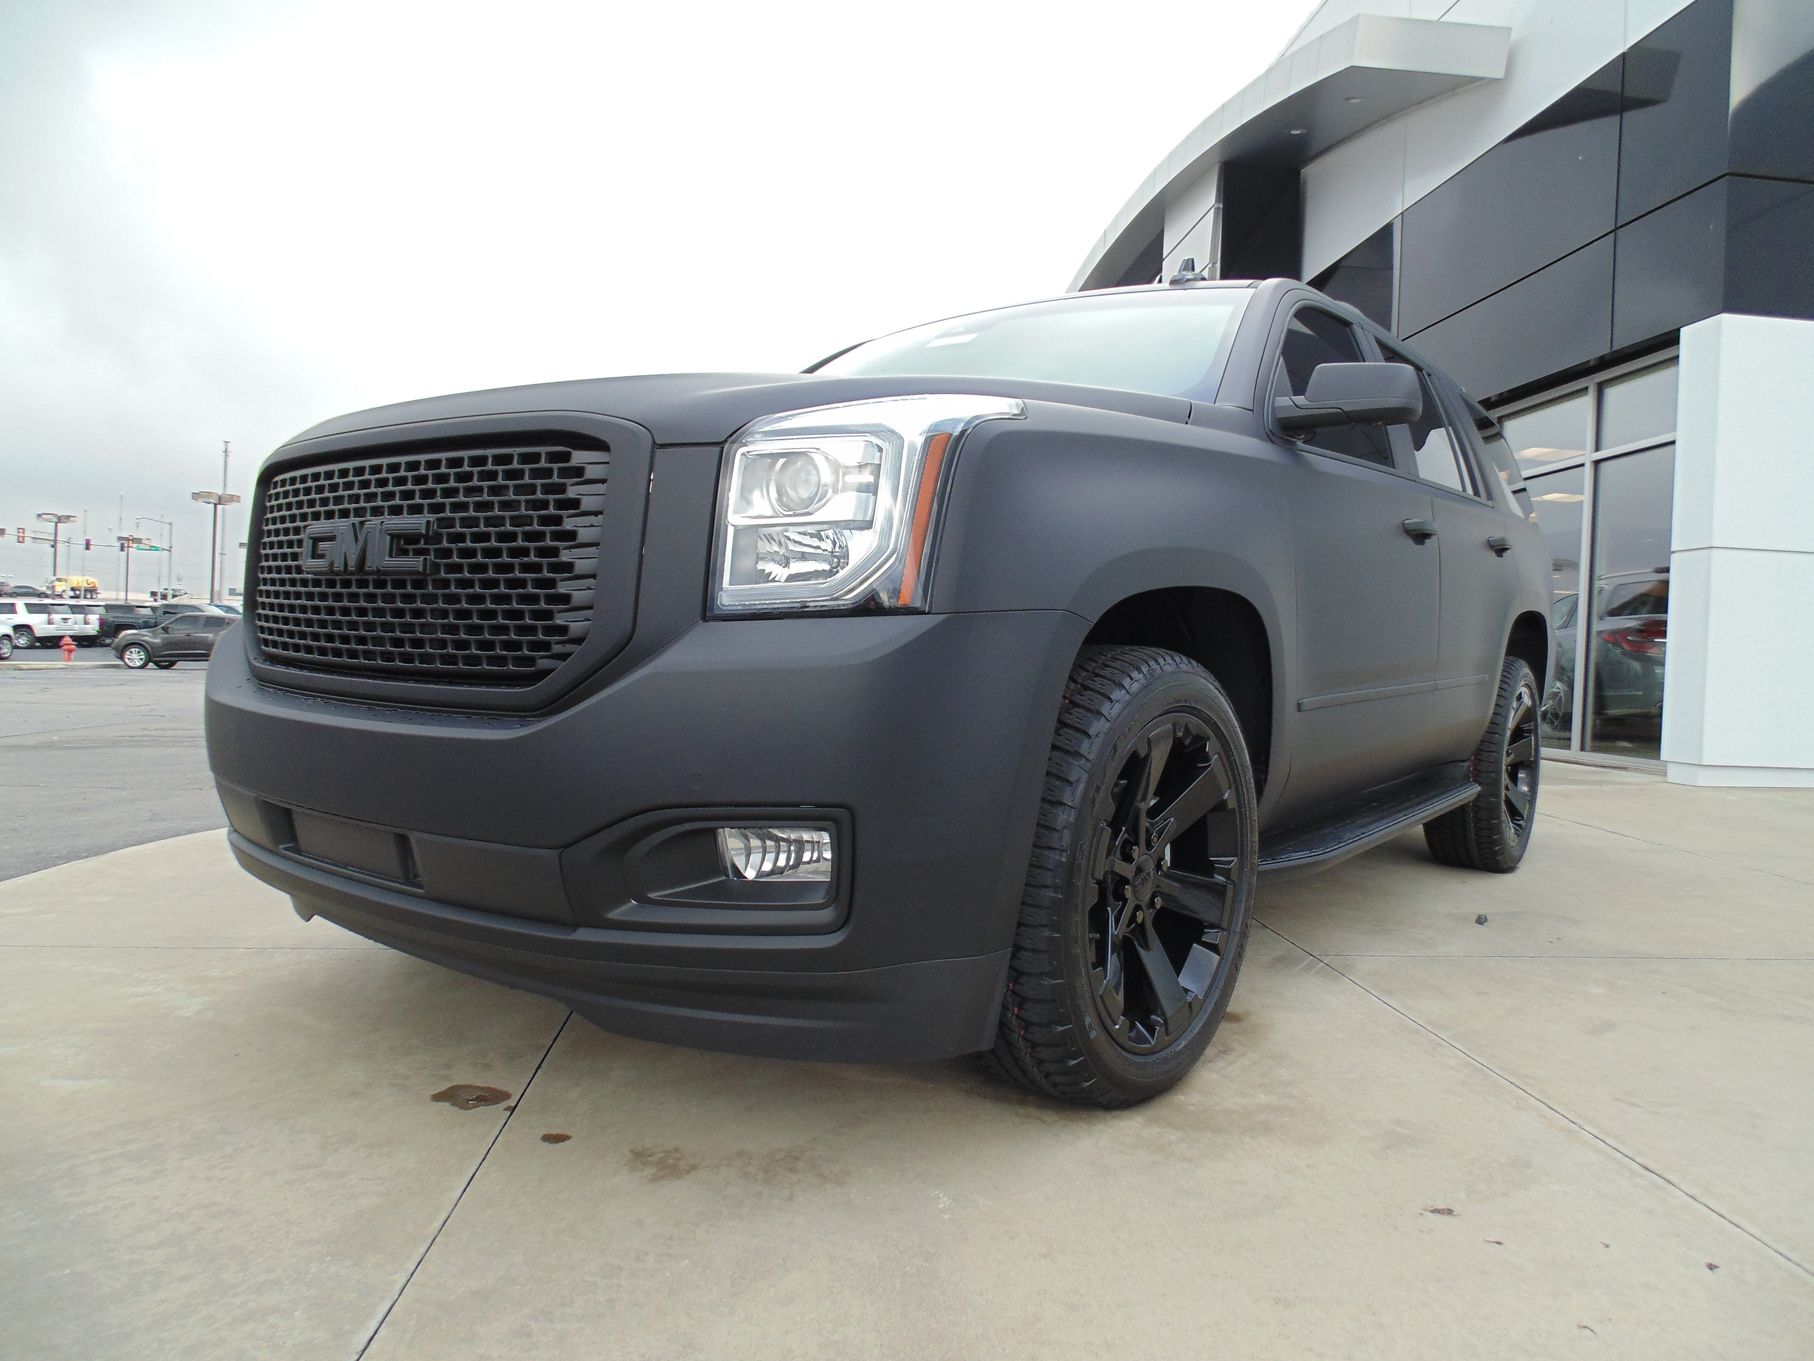 For Those Of You Who Are Fans Of Matte Black We Have The Yukon For